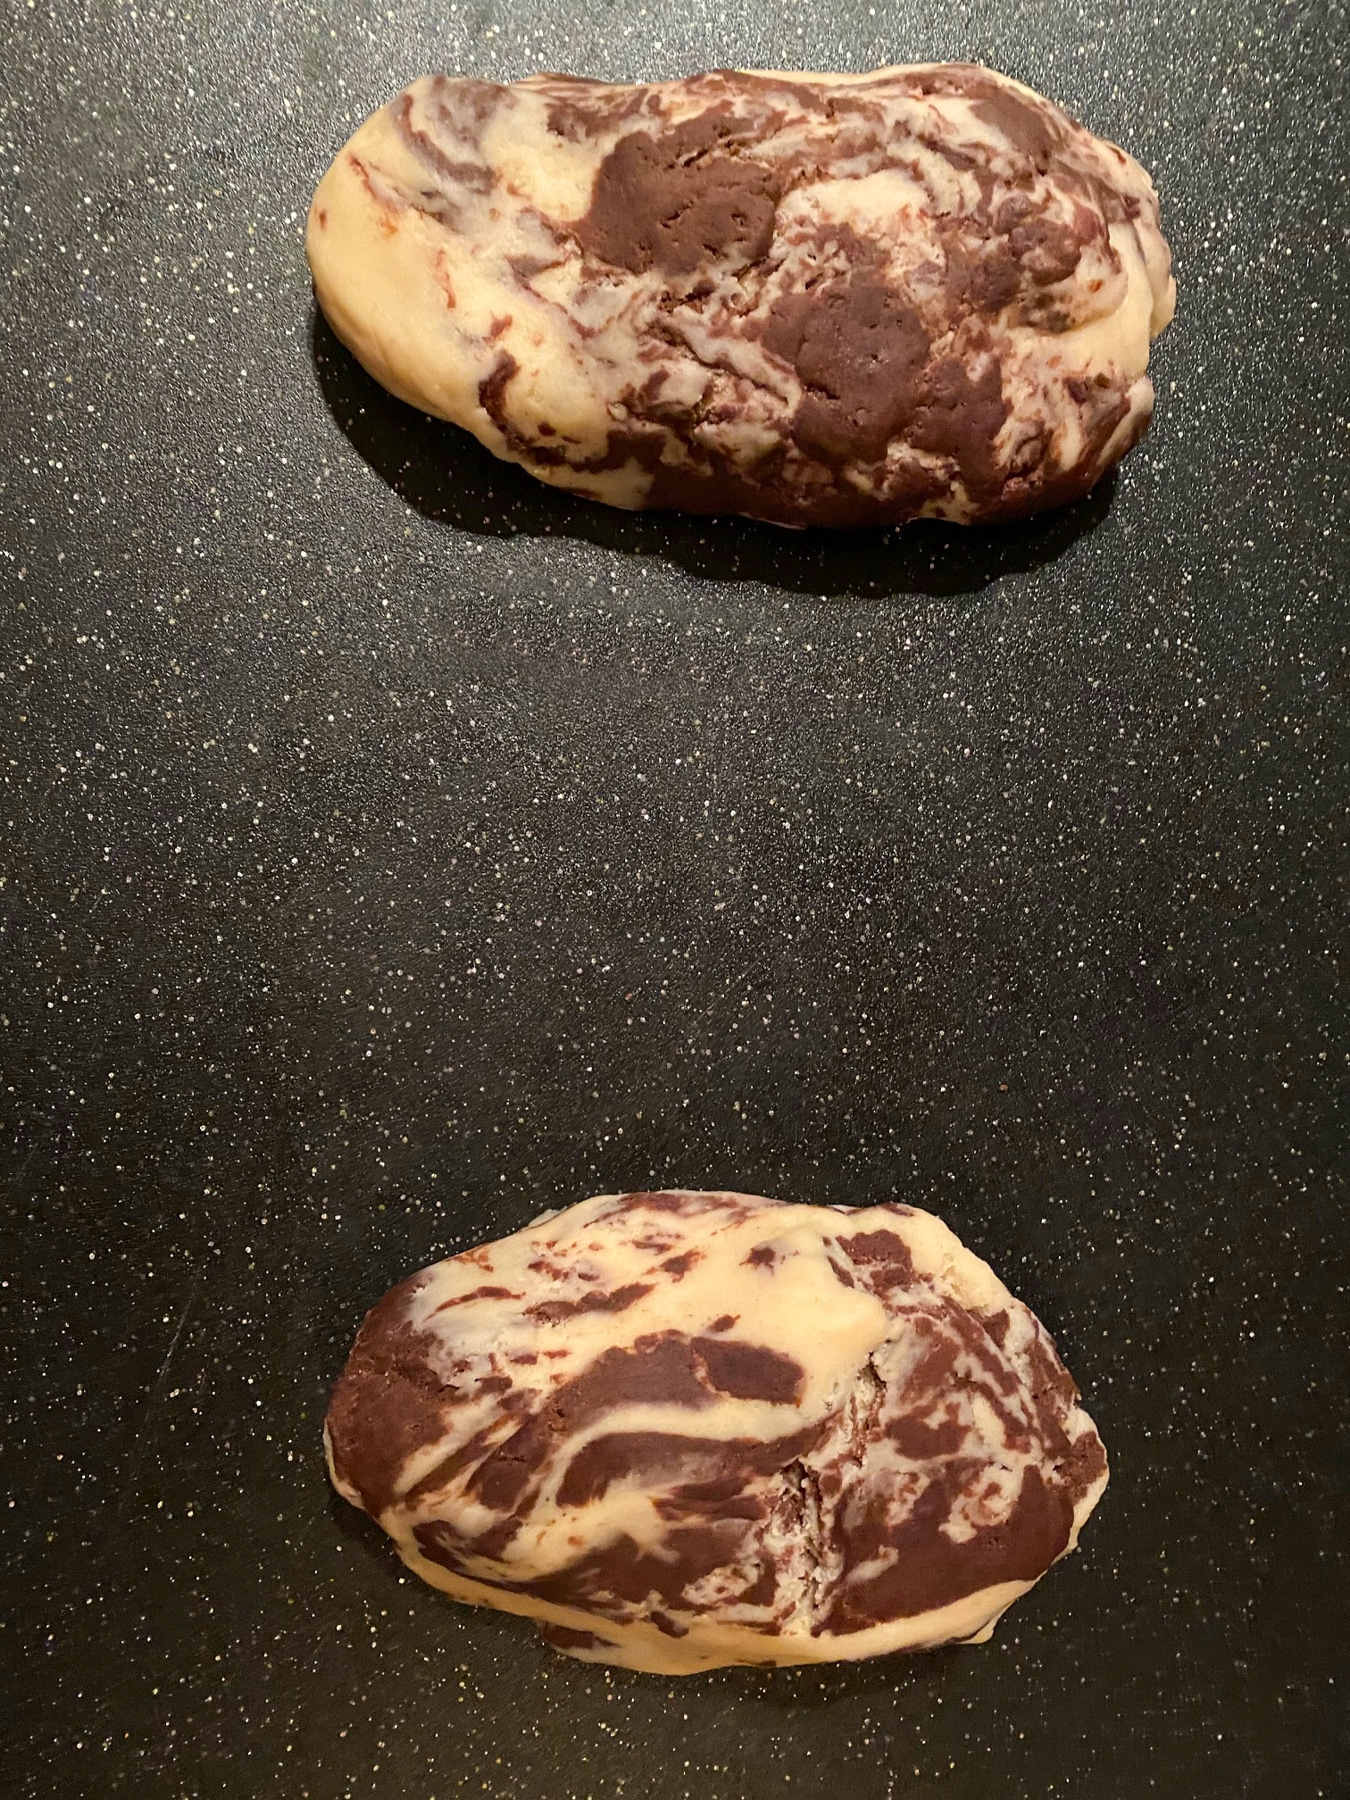 2 portions of marbled biscotti dough on black cutting board